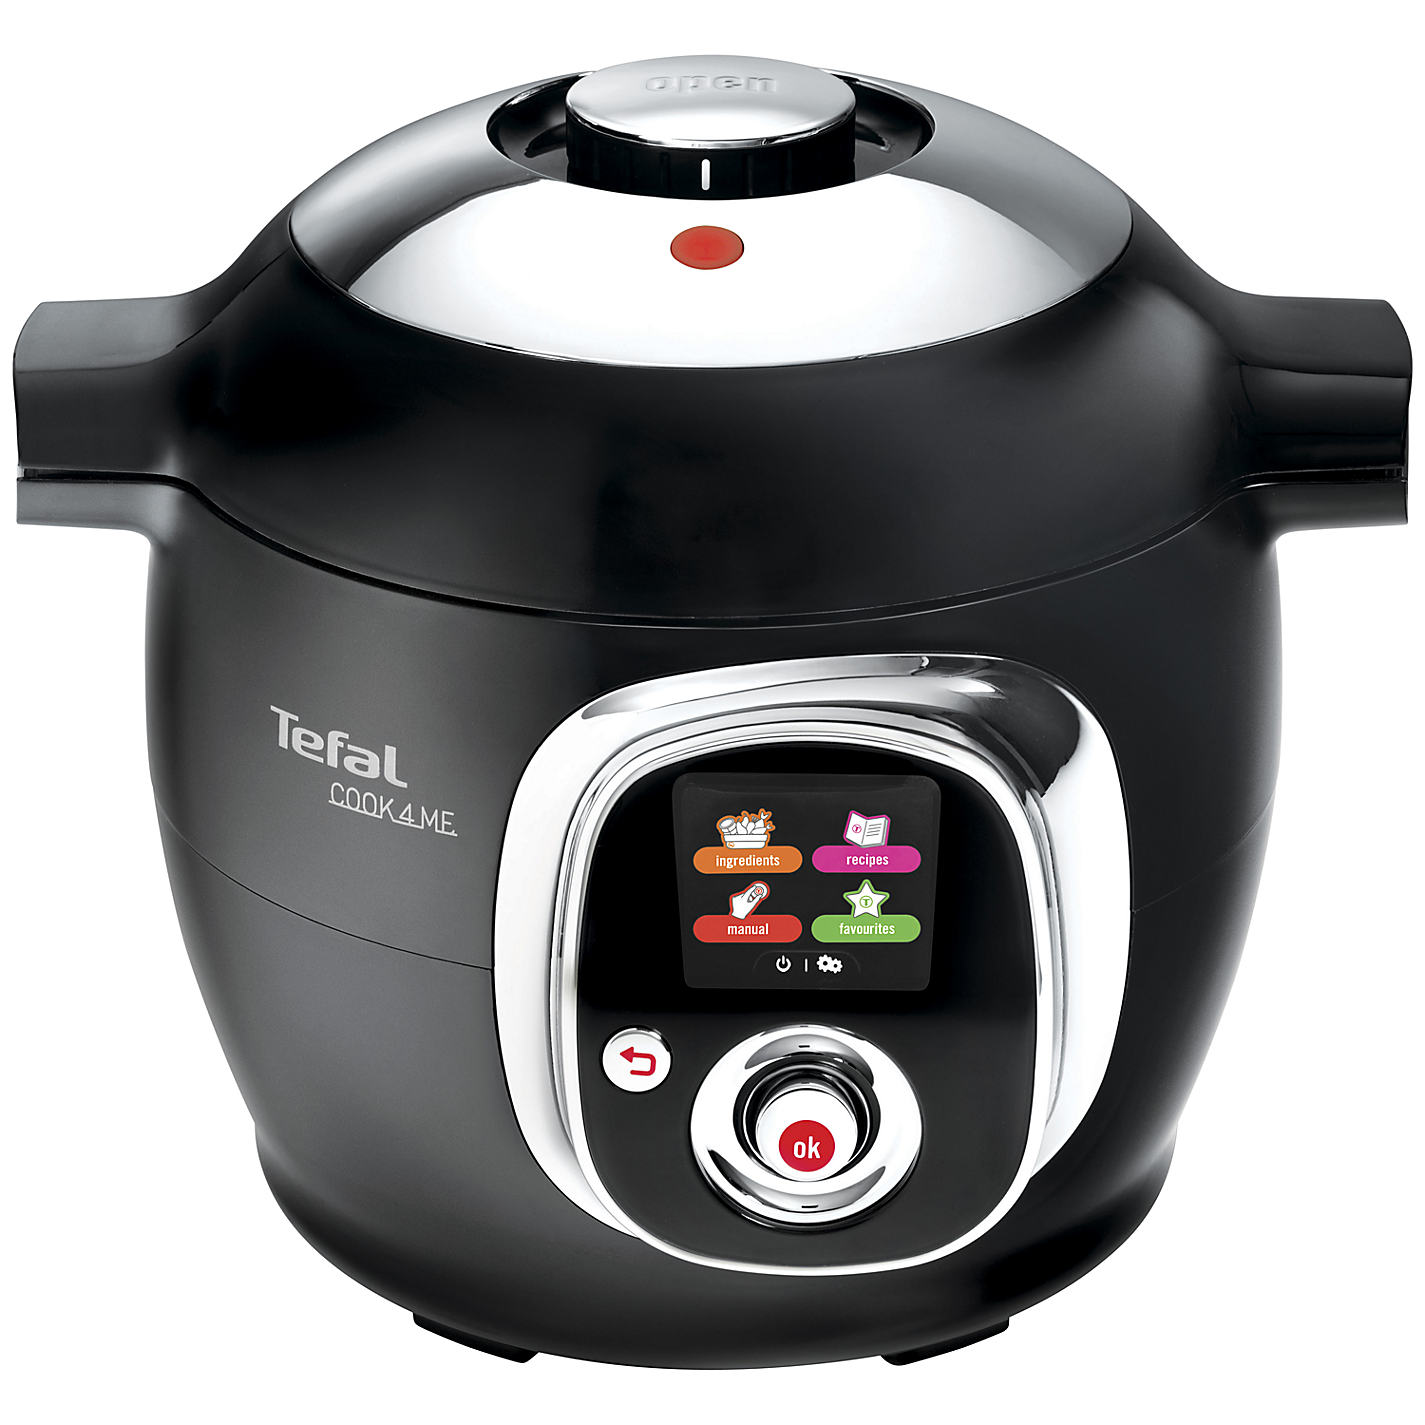 Image result for tefal cook4me